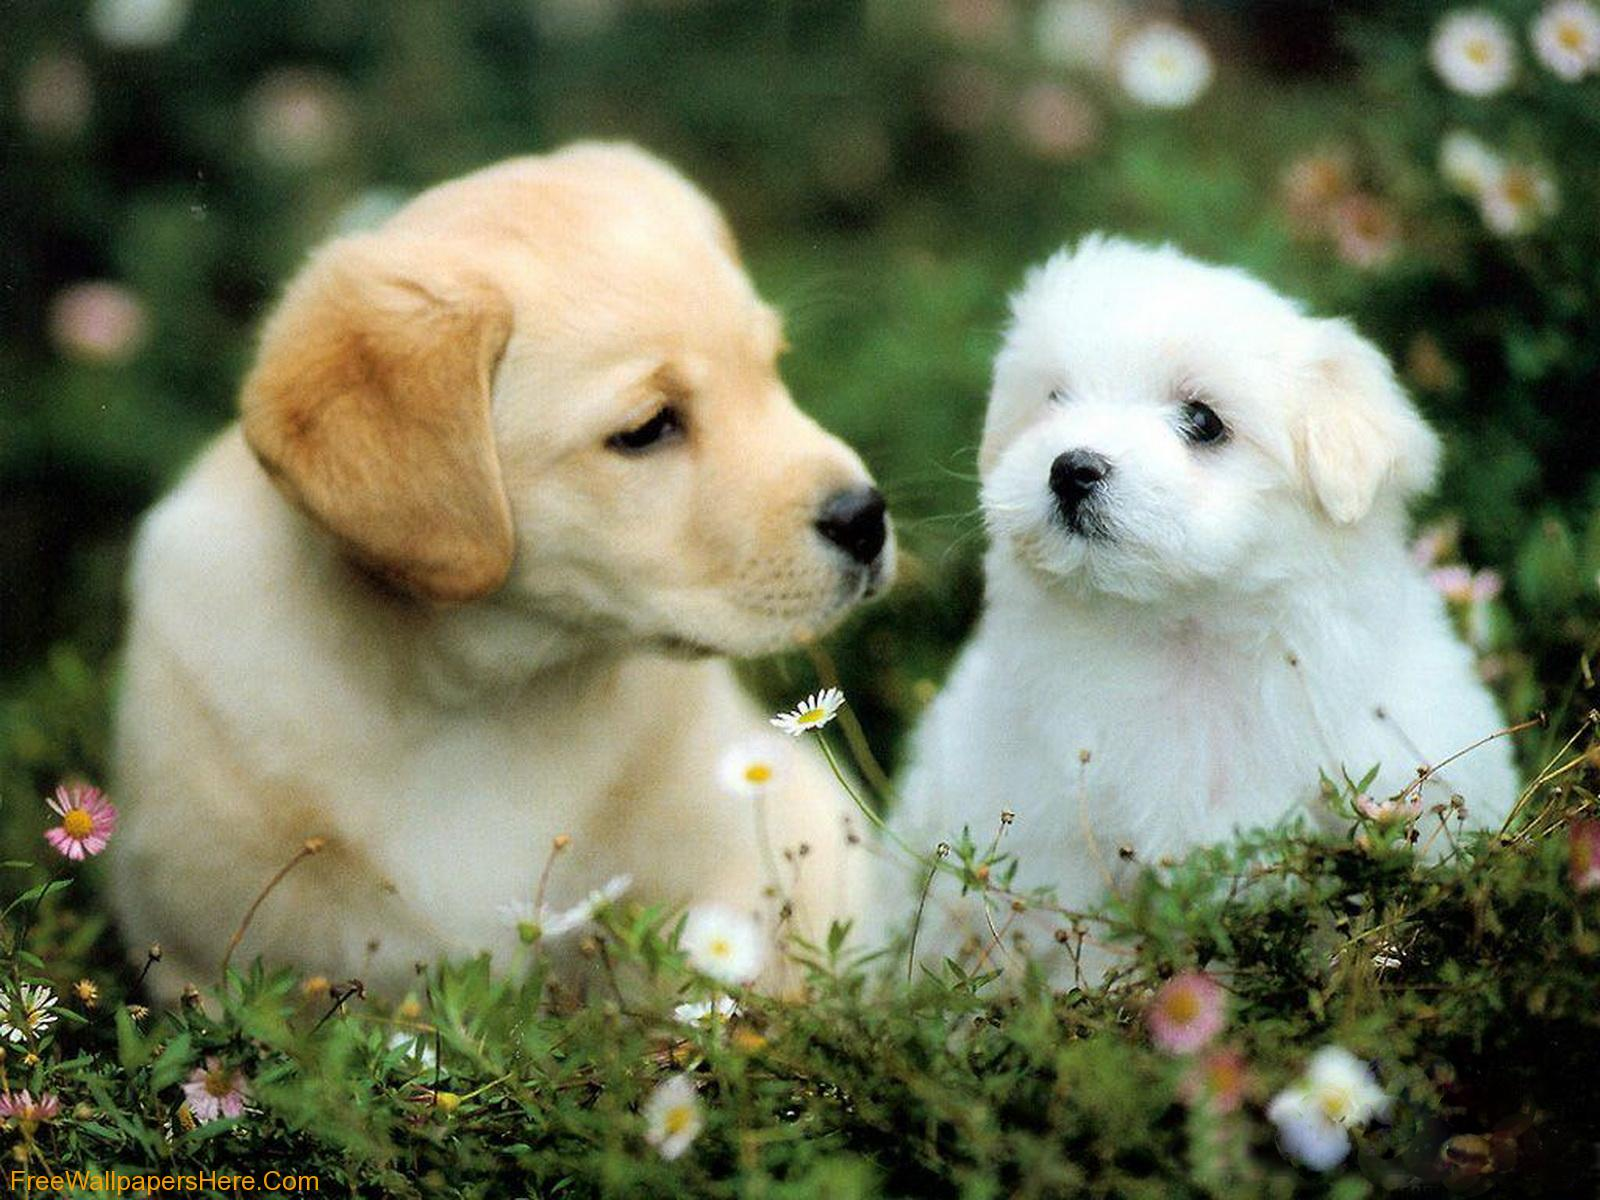 Wallpapers Of Puppies